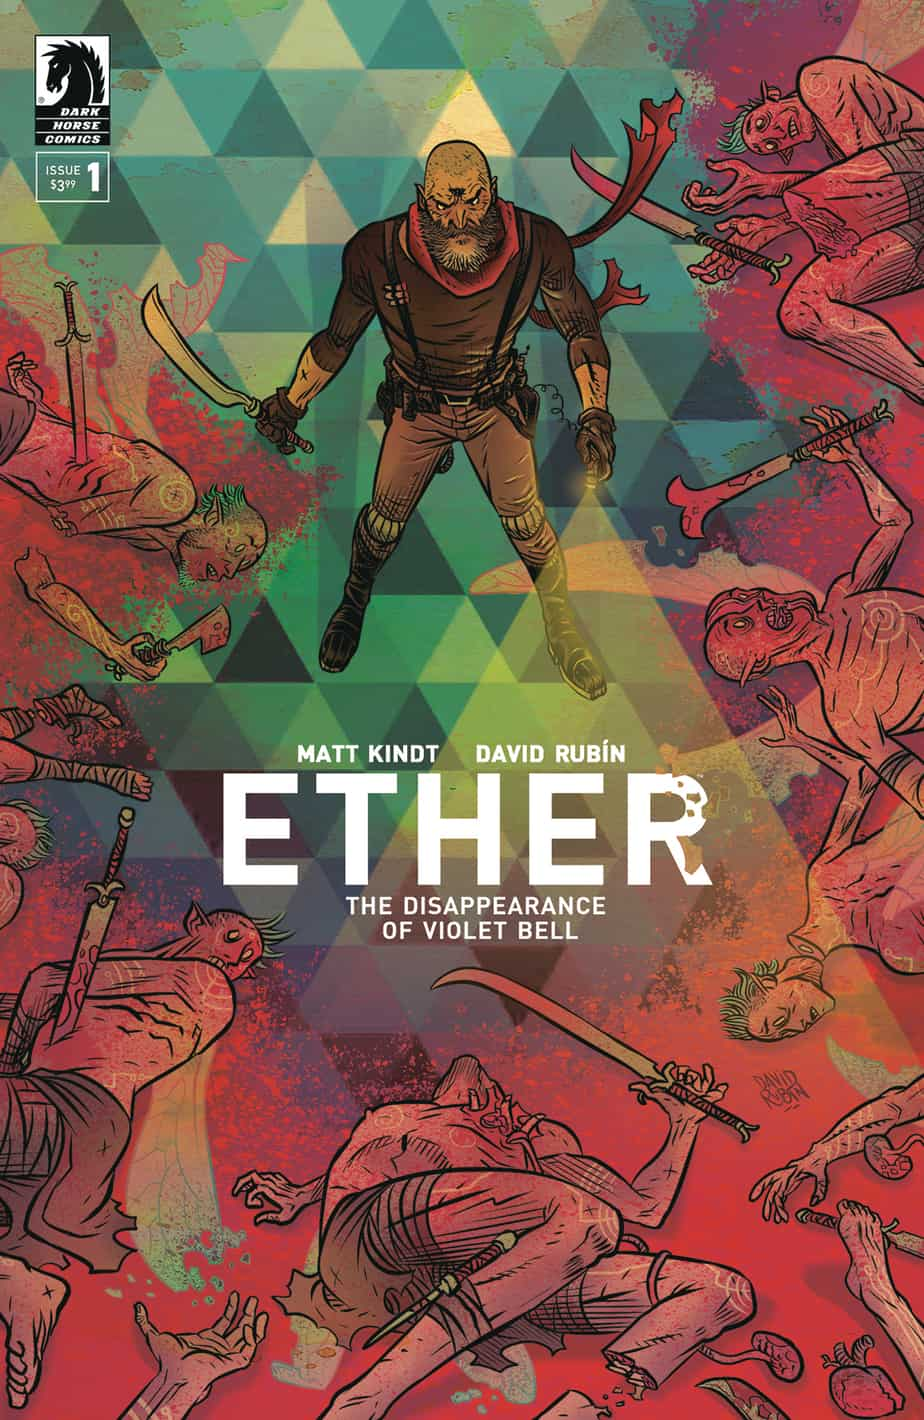 Ether: The Disappearance of Violet Bell #1 - Cover A